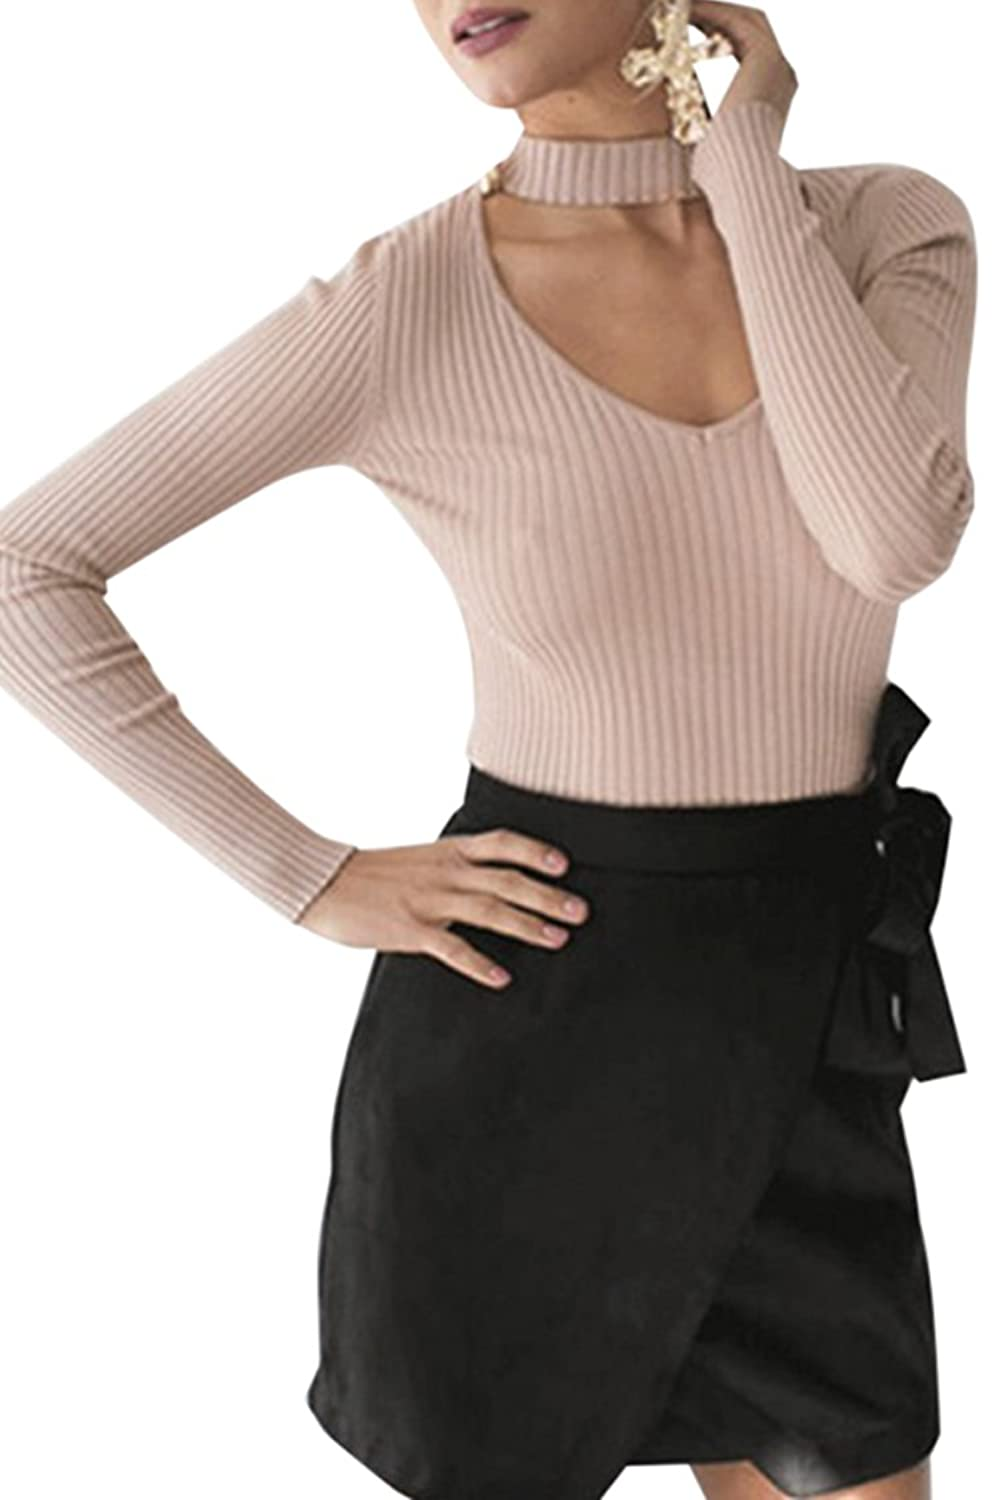 Women's Sexy Choker V neck Long Sleeve Ribbed Knitted Sweater Tops